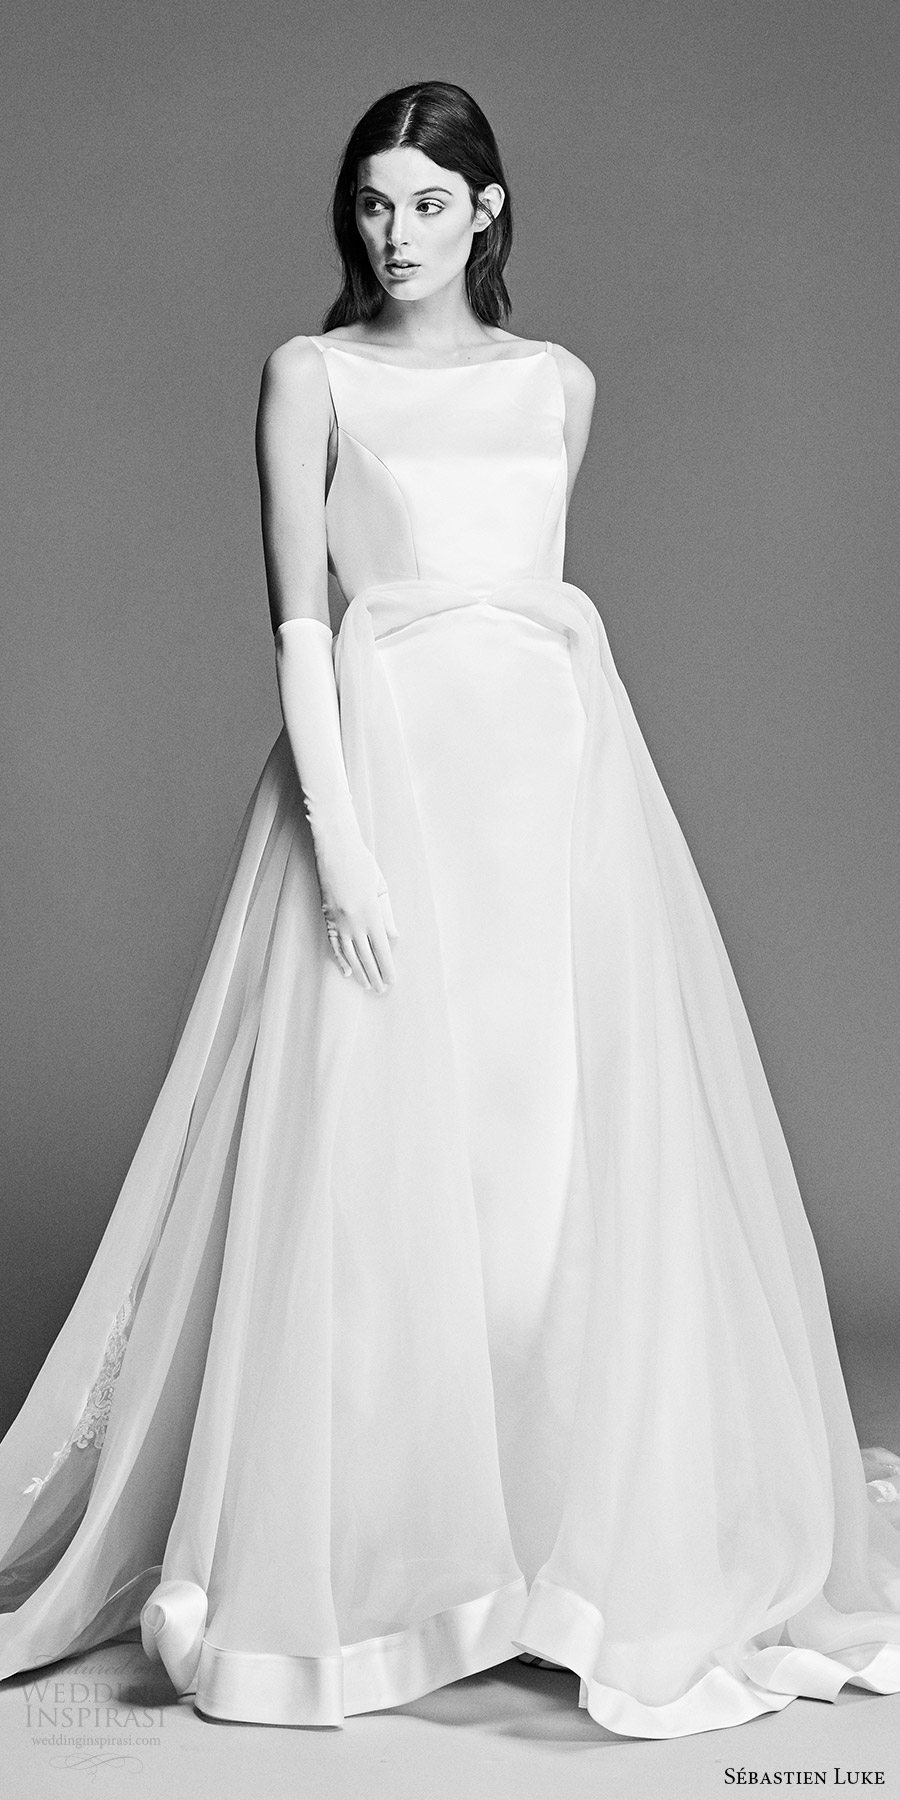 sebastien luke spring 2018 bridal sleeveless bateau neck ball gown wedding dress (18b15a) zv romantic chapel train